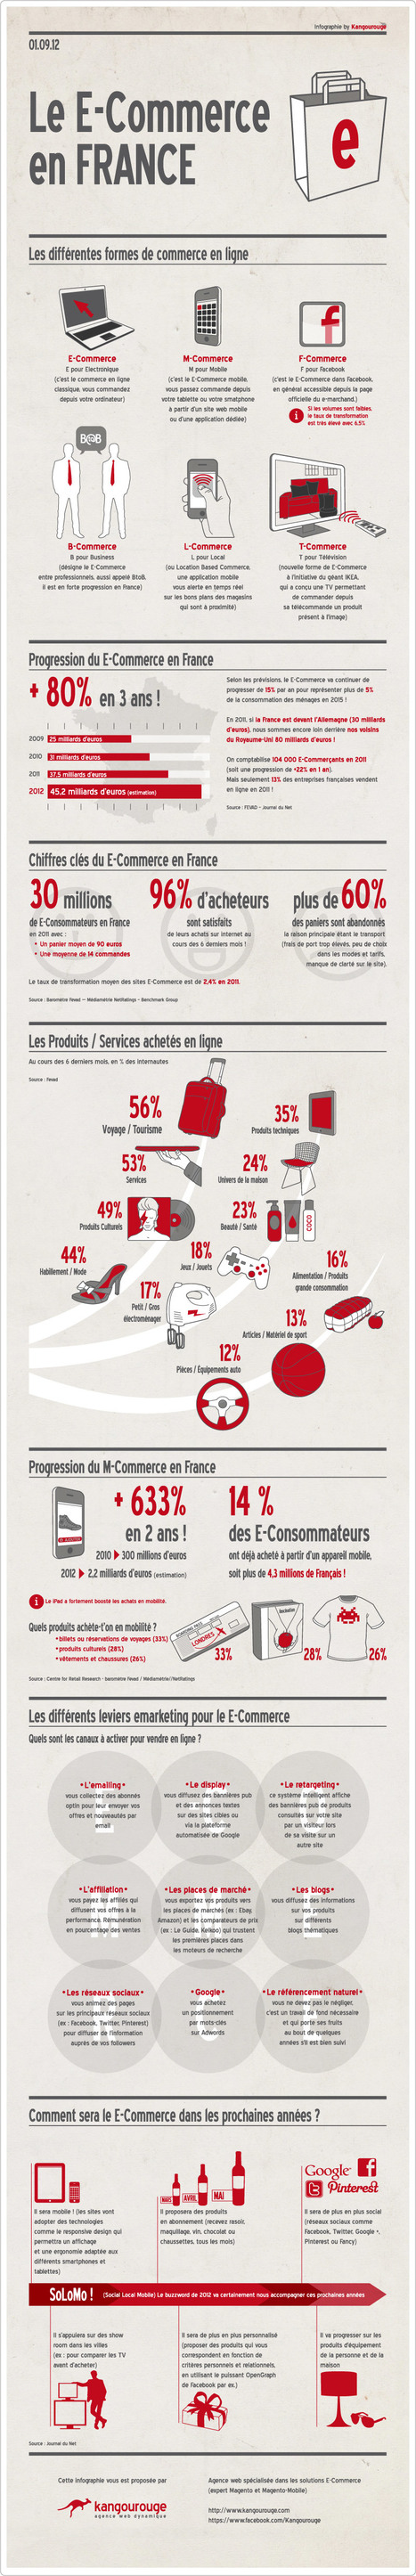 "Infographie : le E-commerce en France en 7 points clés | ""Le Magazine de la Grande Distribution et du Commerce"" 